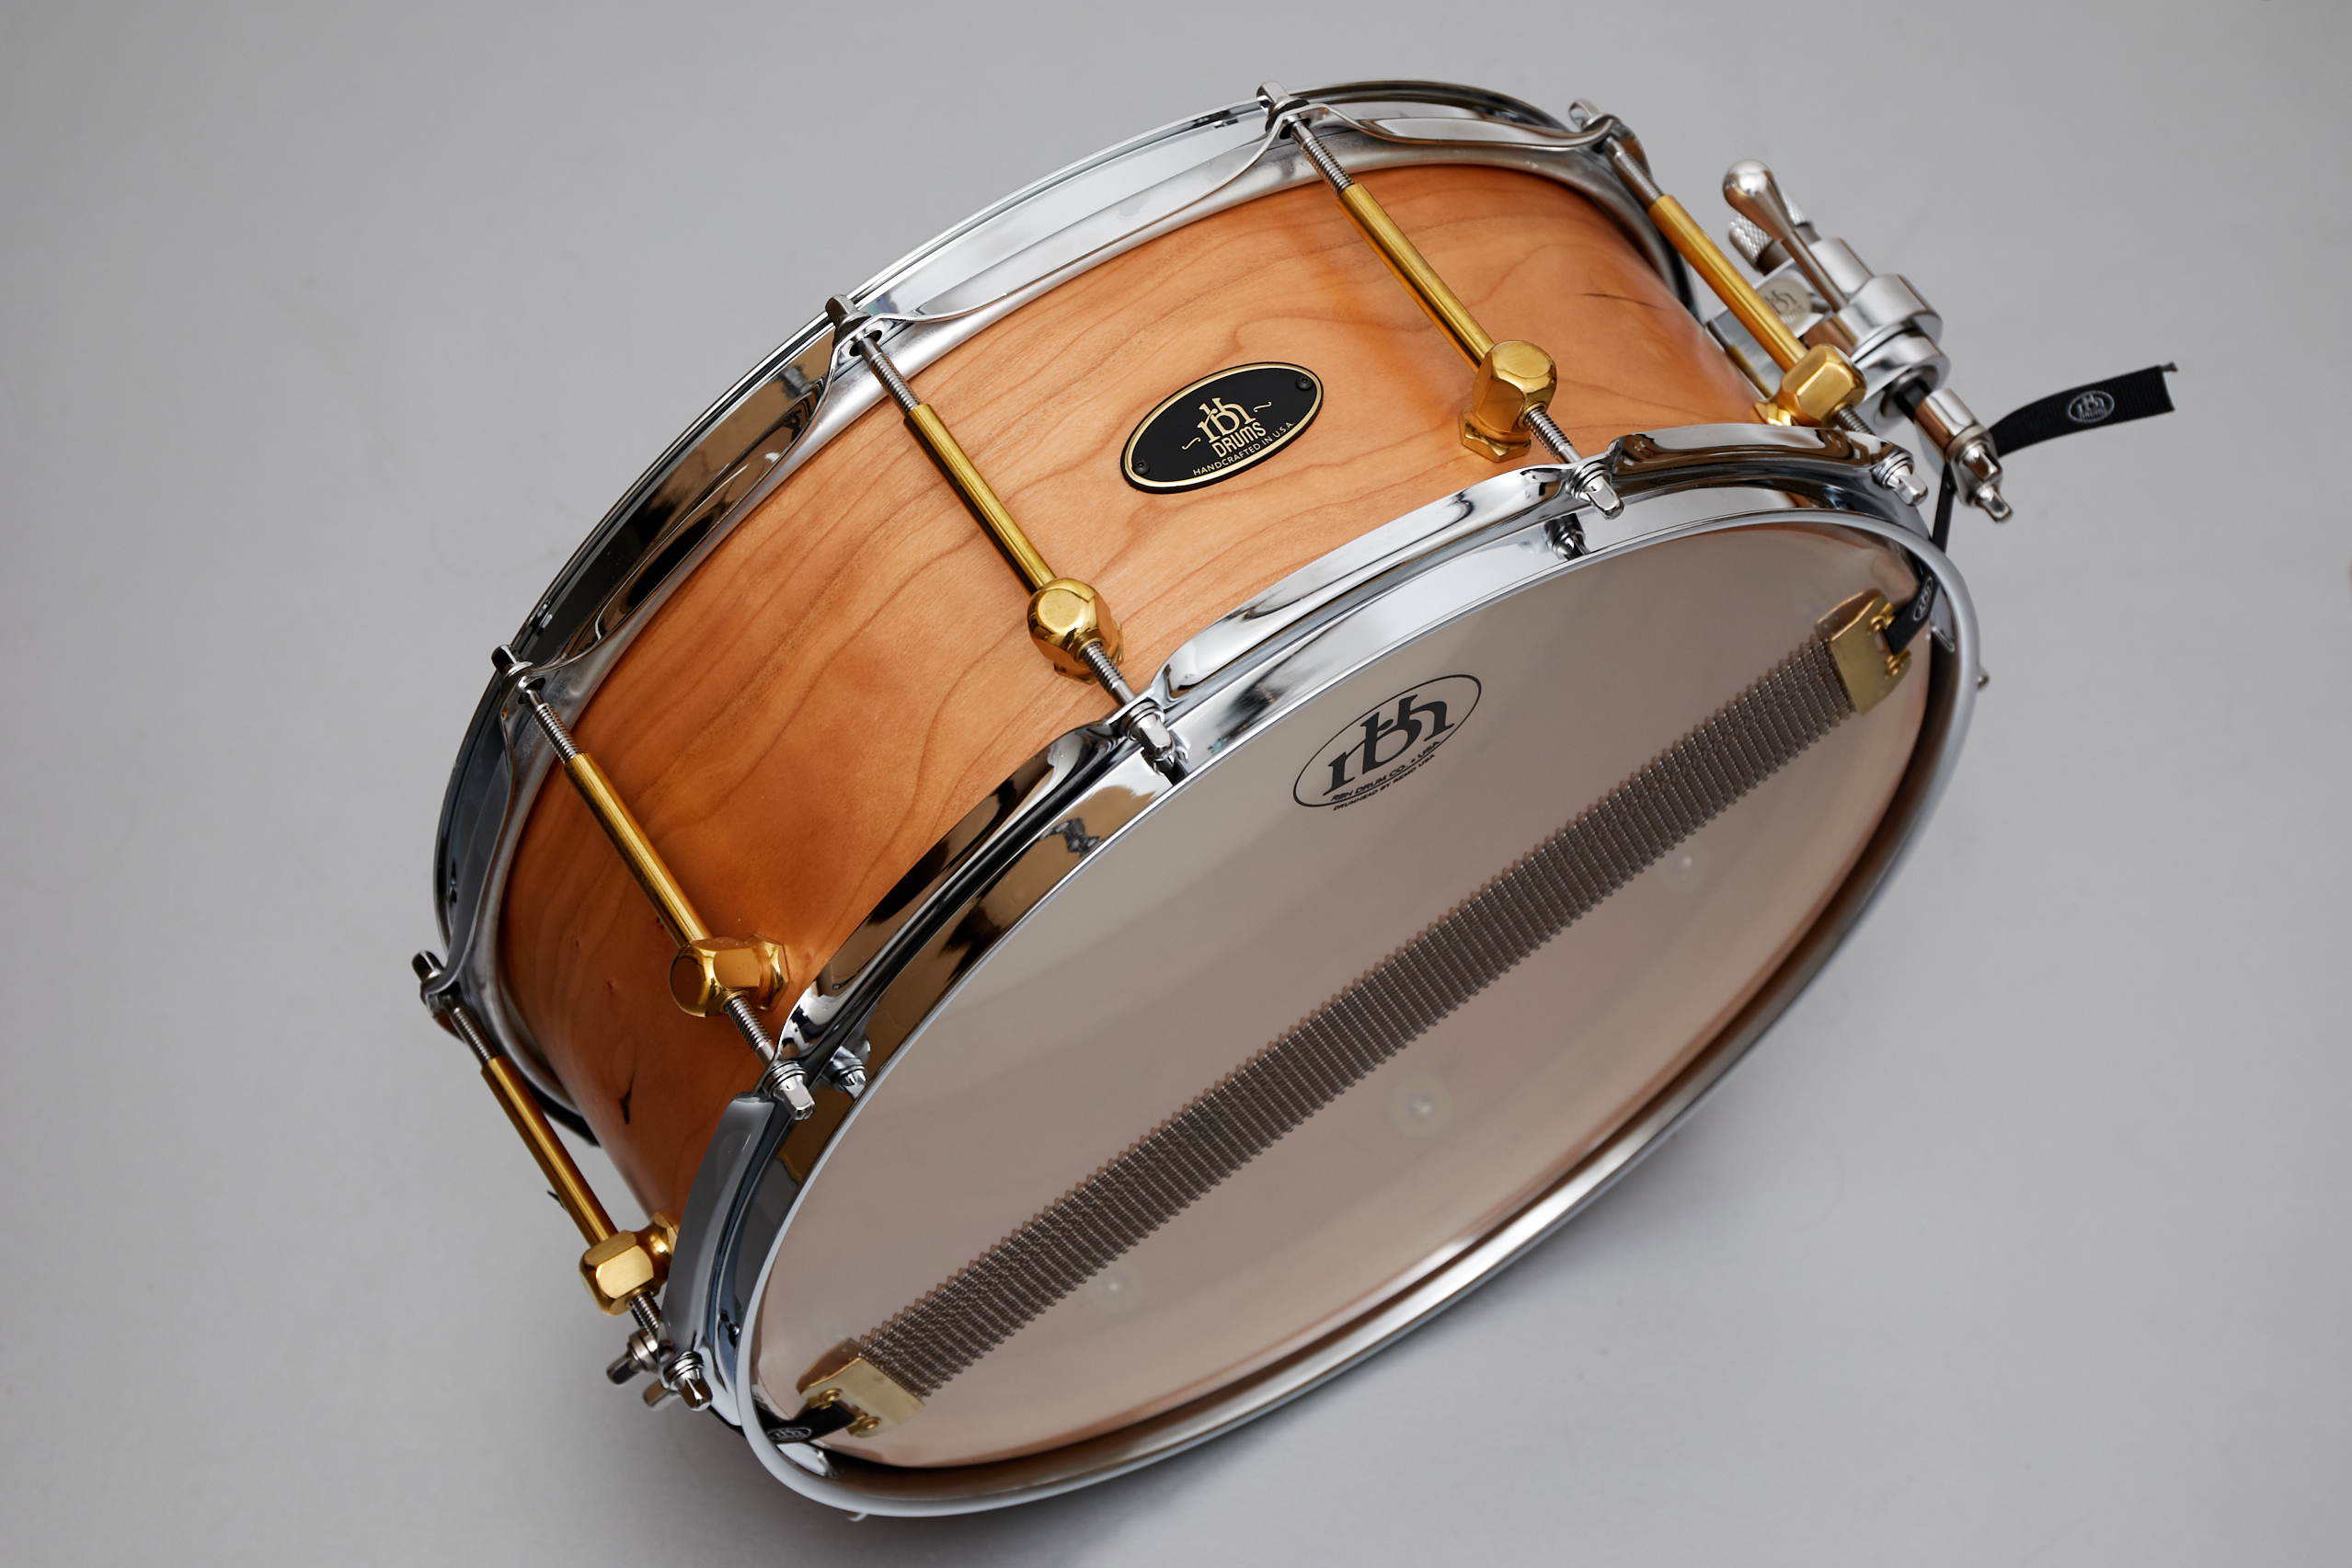 RBH Drums Snare Drums Steambent Cherry Wood